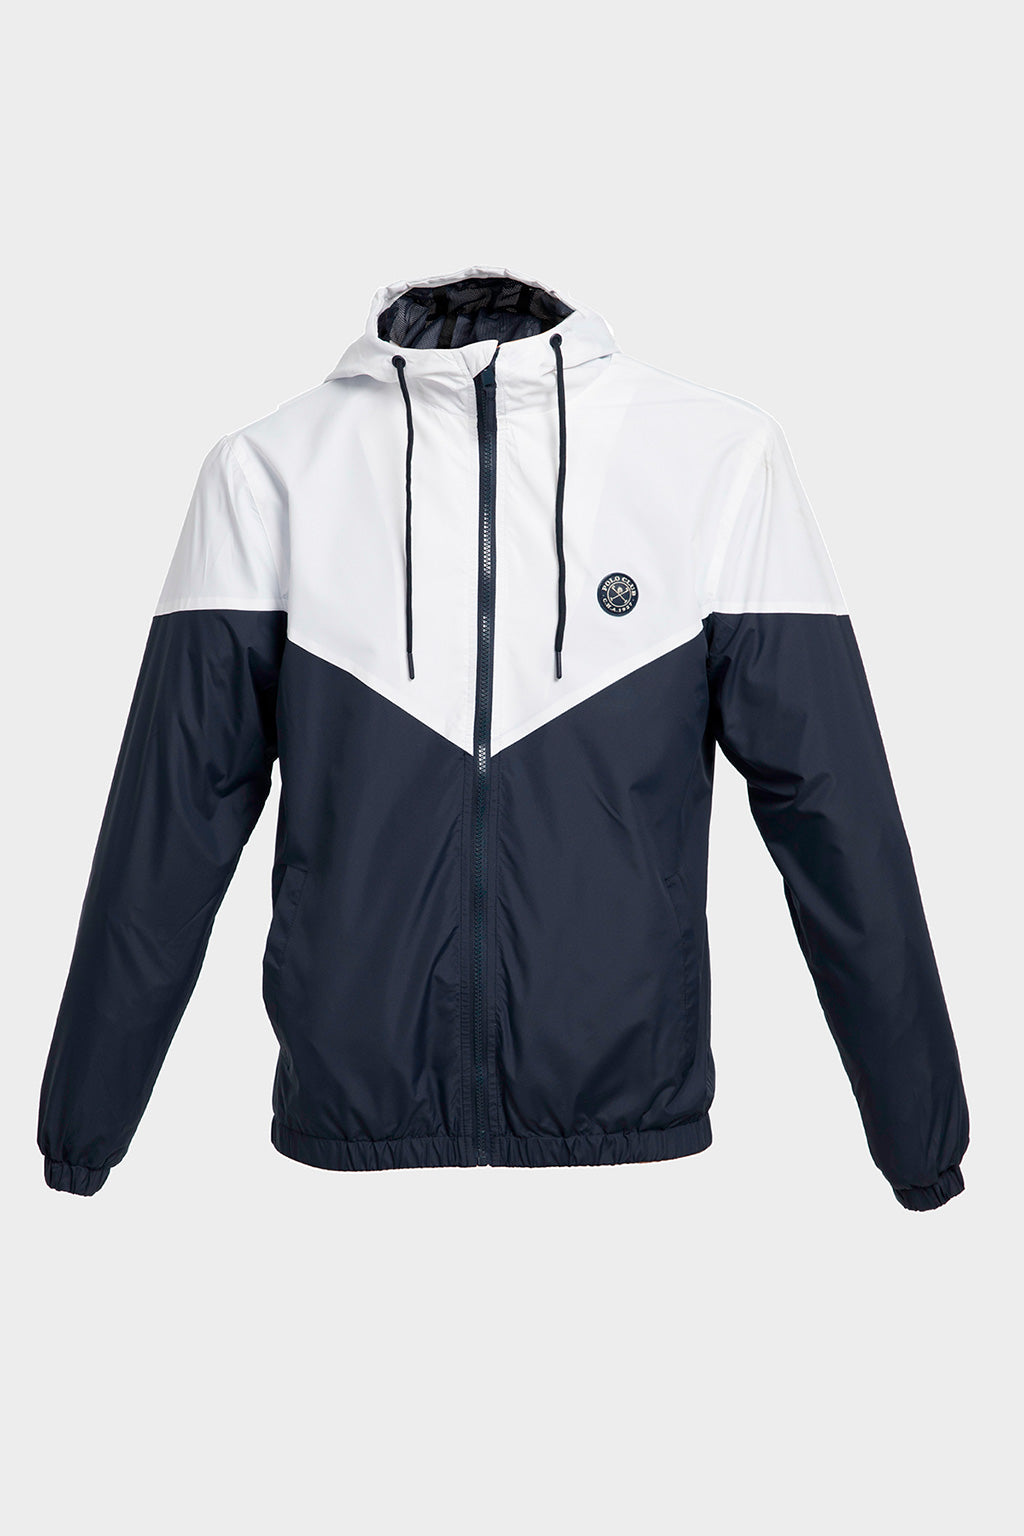 Navy blue and white windbreaker